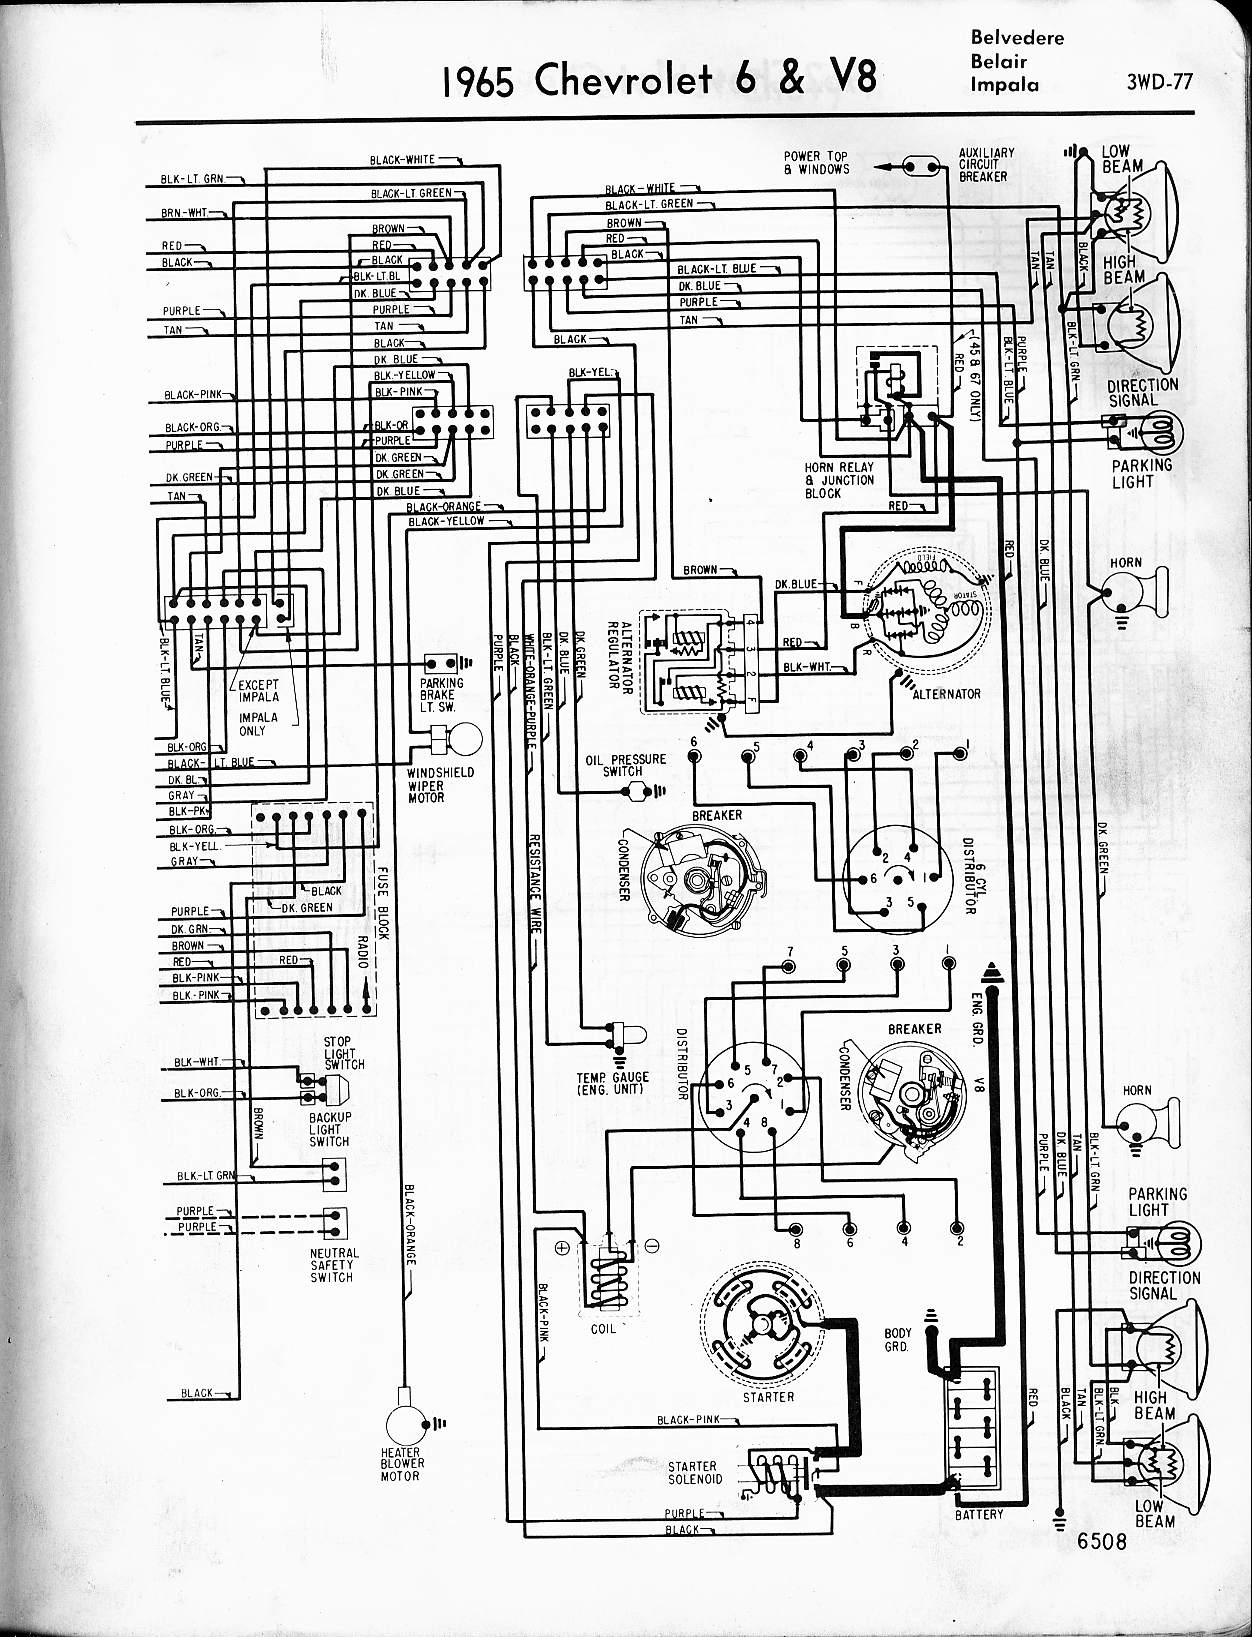 [DIAGRAM_5UK]  48C31 1967 Chevelle Wiring Diagrams Online | Wiring Library | 1966 67 Chevelle Wiring Schematic |  | Wiring Library